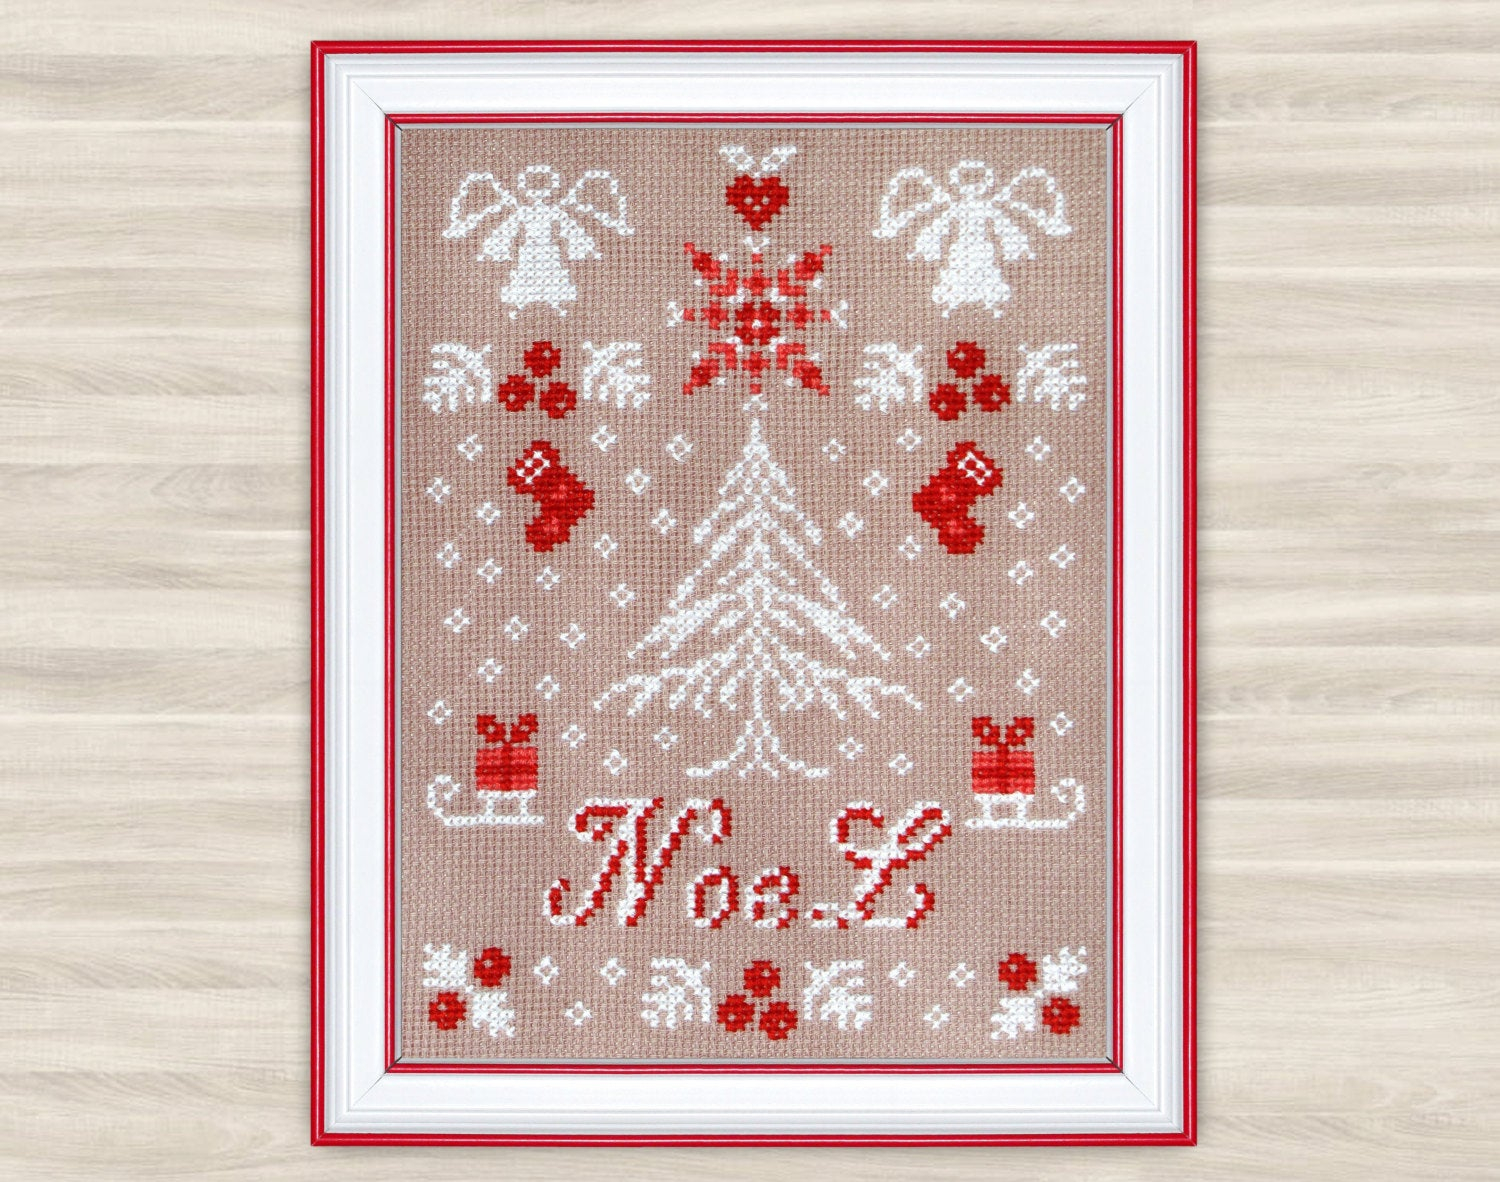 Embroidery Sampler Patterns Free Buy 2 Get 1 Free Noel Cross Stitch Pattern Pdf Winter Sampler Angels Christmas Tree Home Decor Snowflakes White Snow Sled New Years Gift